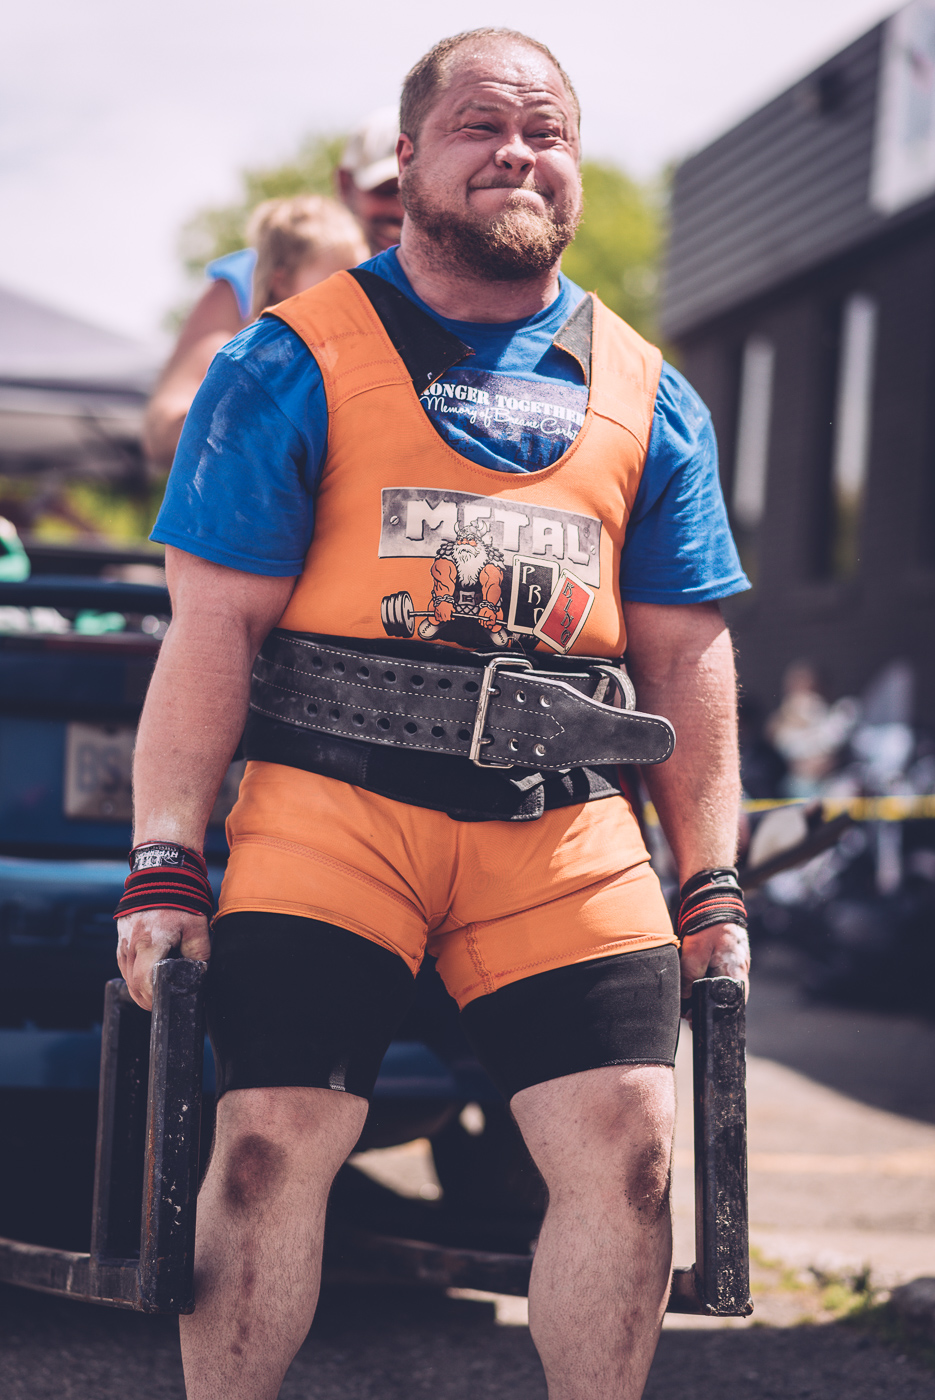 strongman_2016_blog9.jpg